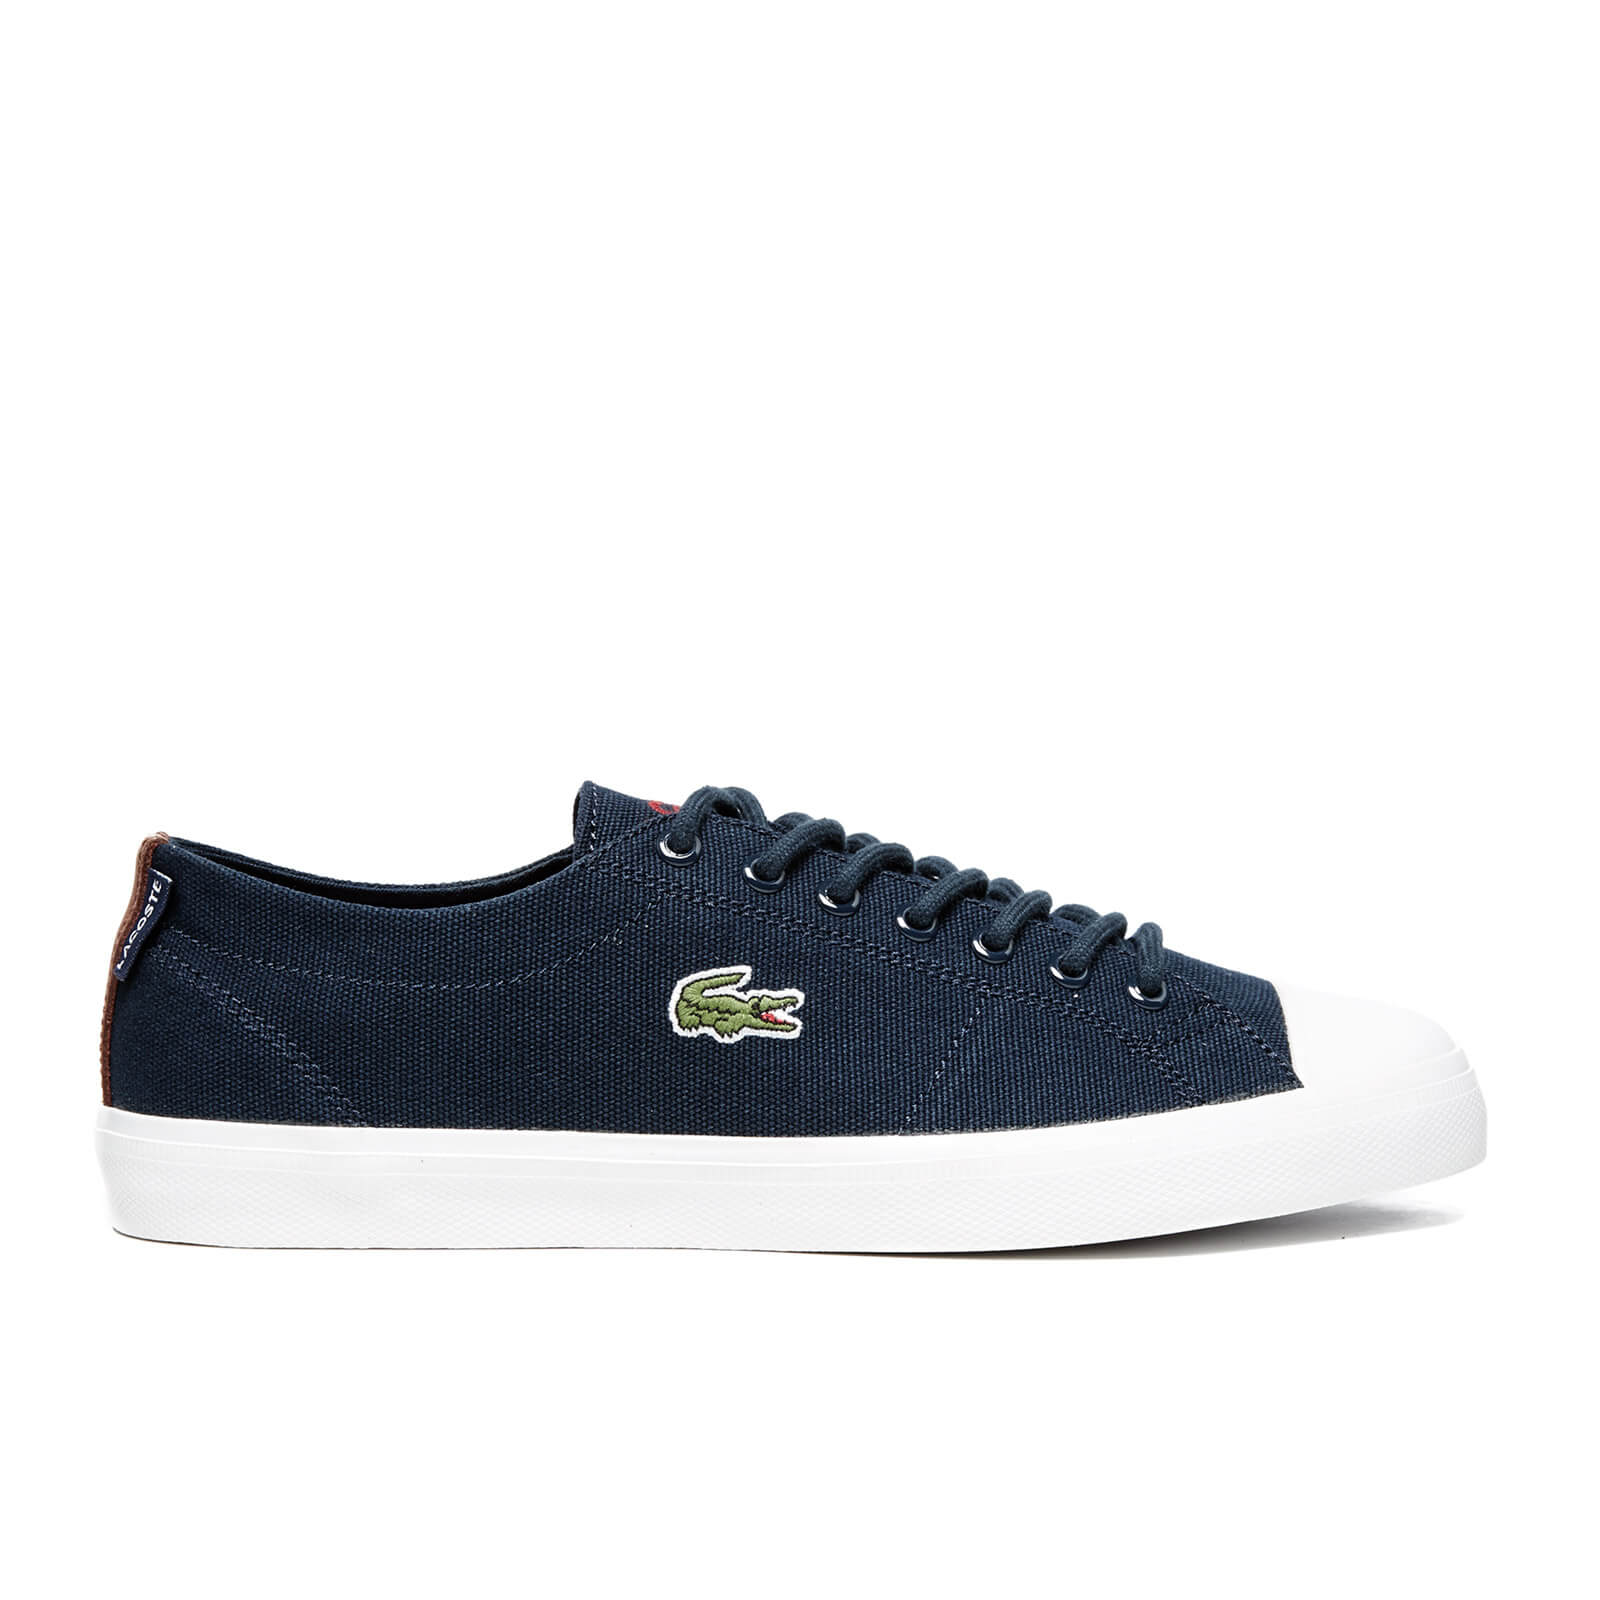 facc826dae6a72 Lacoste Men s Marcel Chunky Tc Sep SPM Trainers - Dark Blue Dark Blue -  Free UK Delivery over £50